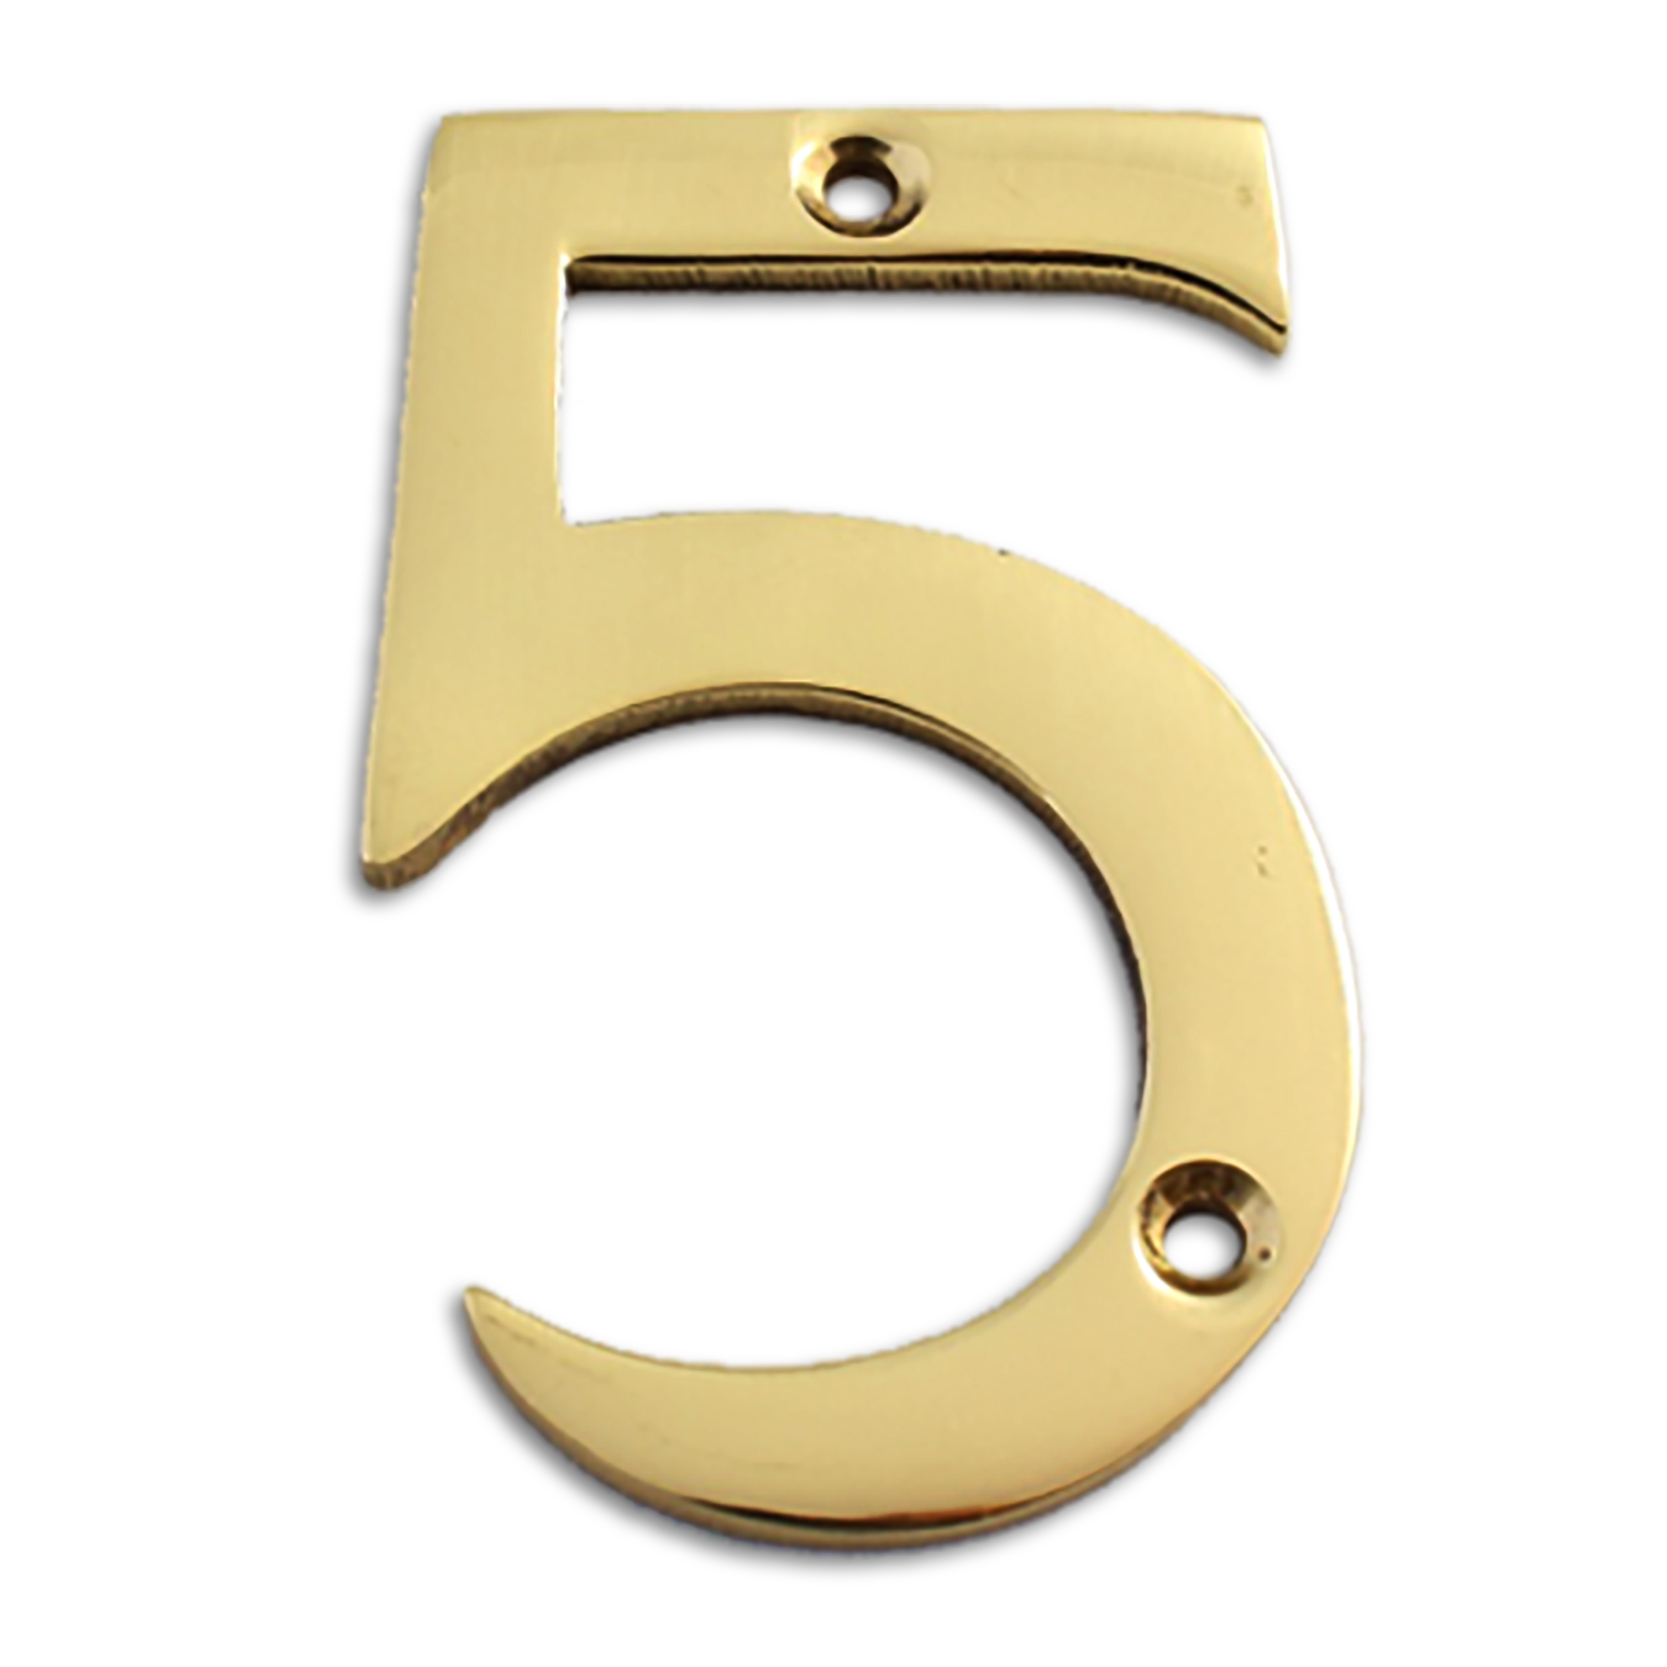 3-inch brass metal house number in polished brass finish - metal number 5